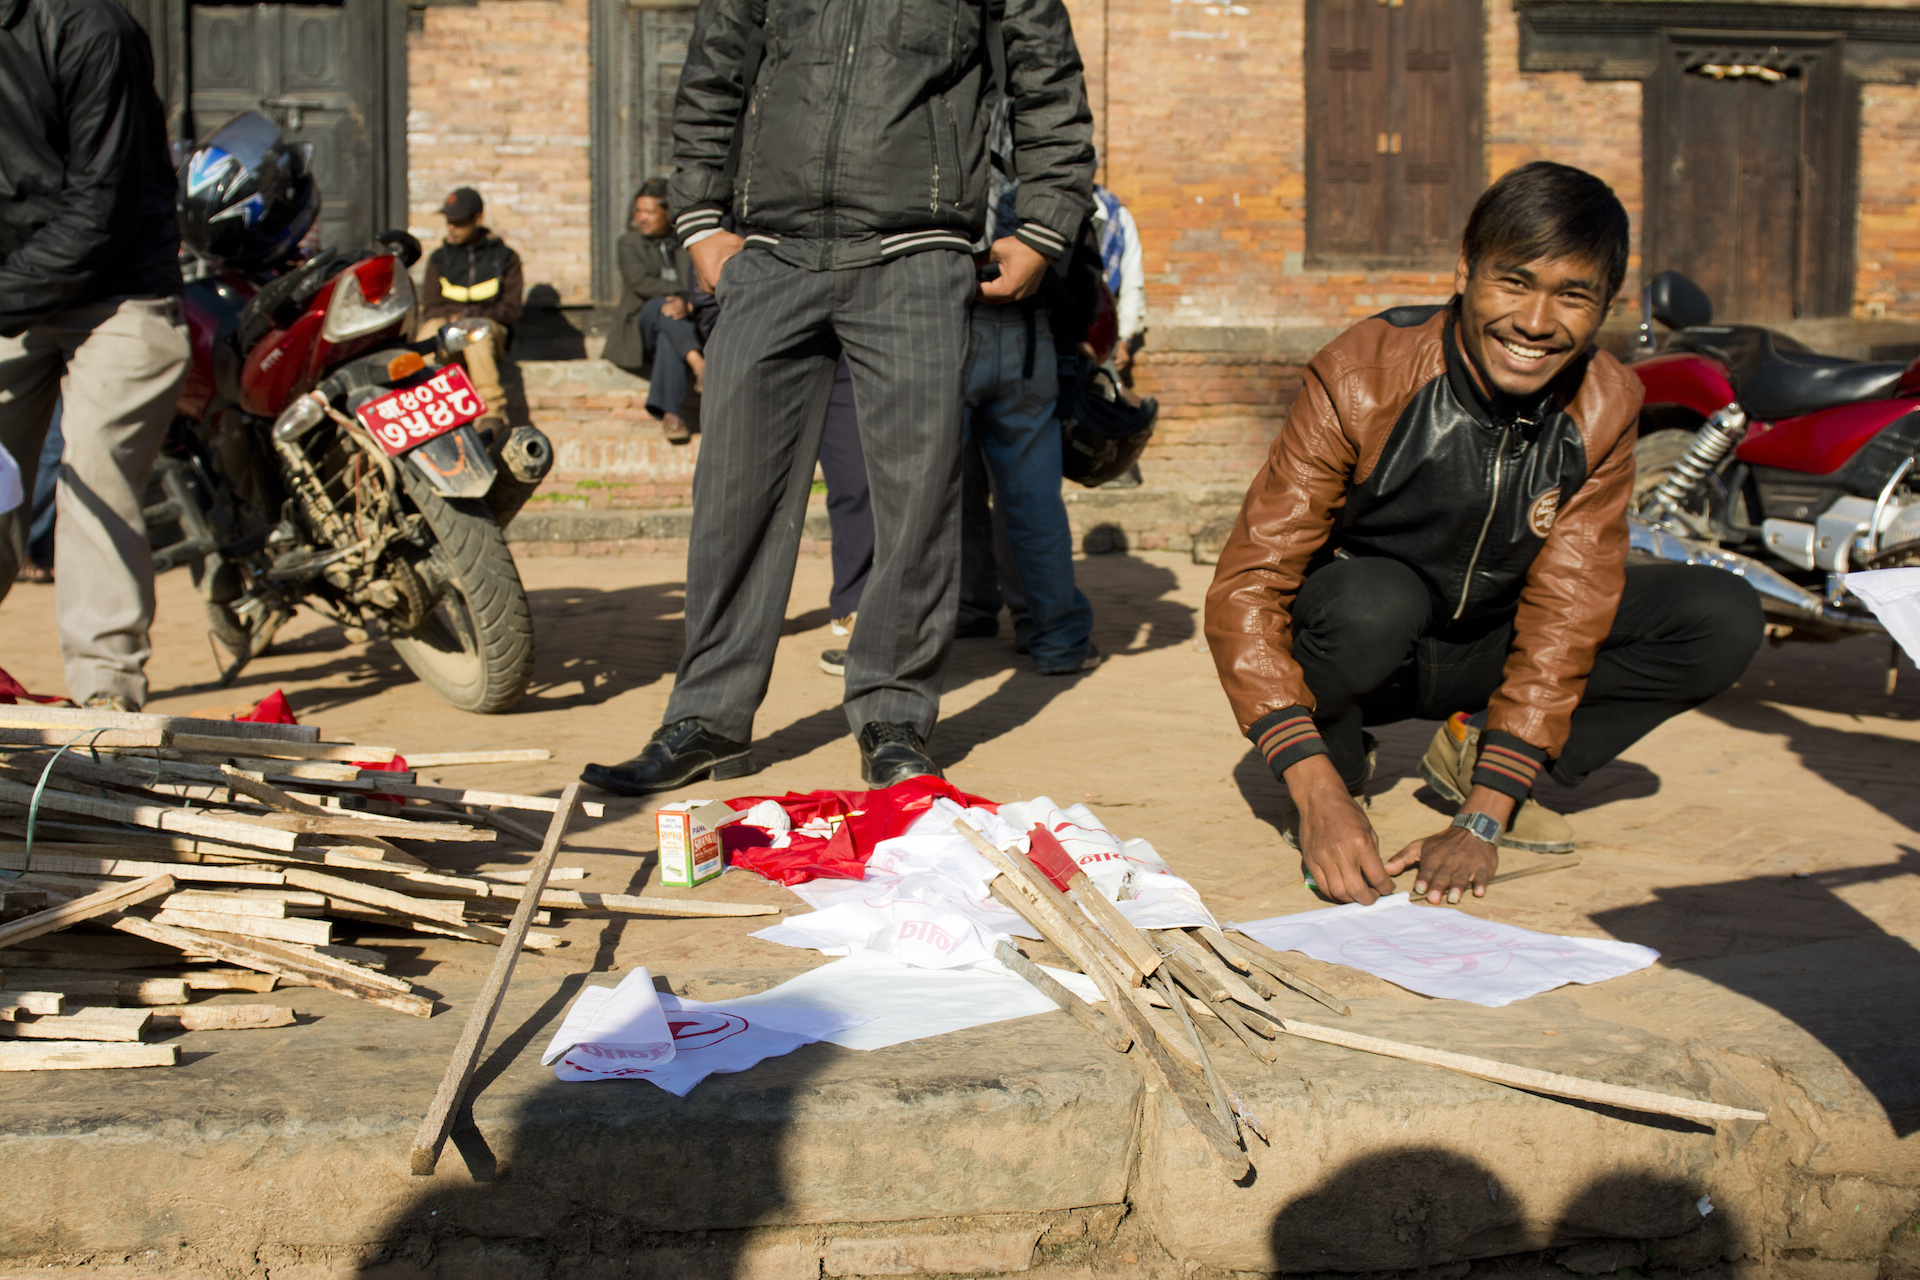 A Nepali man prepares flags for a political rally in Kathmandu. The flags were held up by motorcyclists as they wound through Kathmandu's narrow streets.